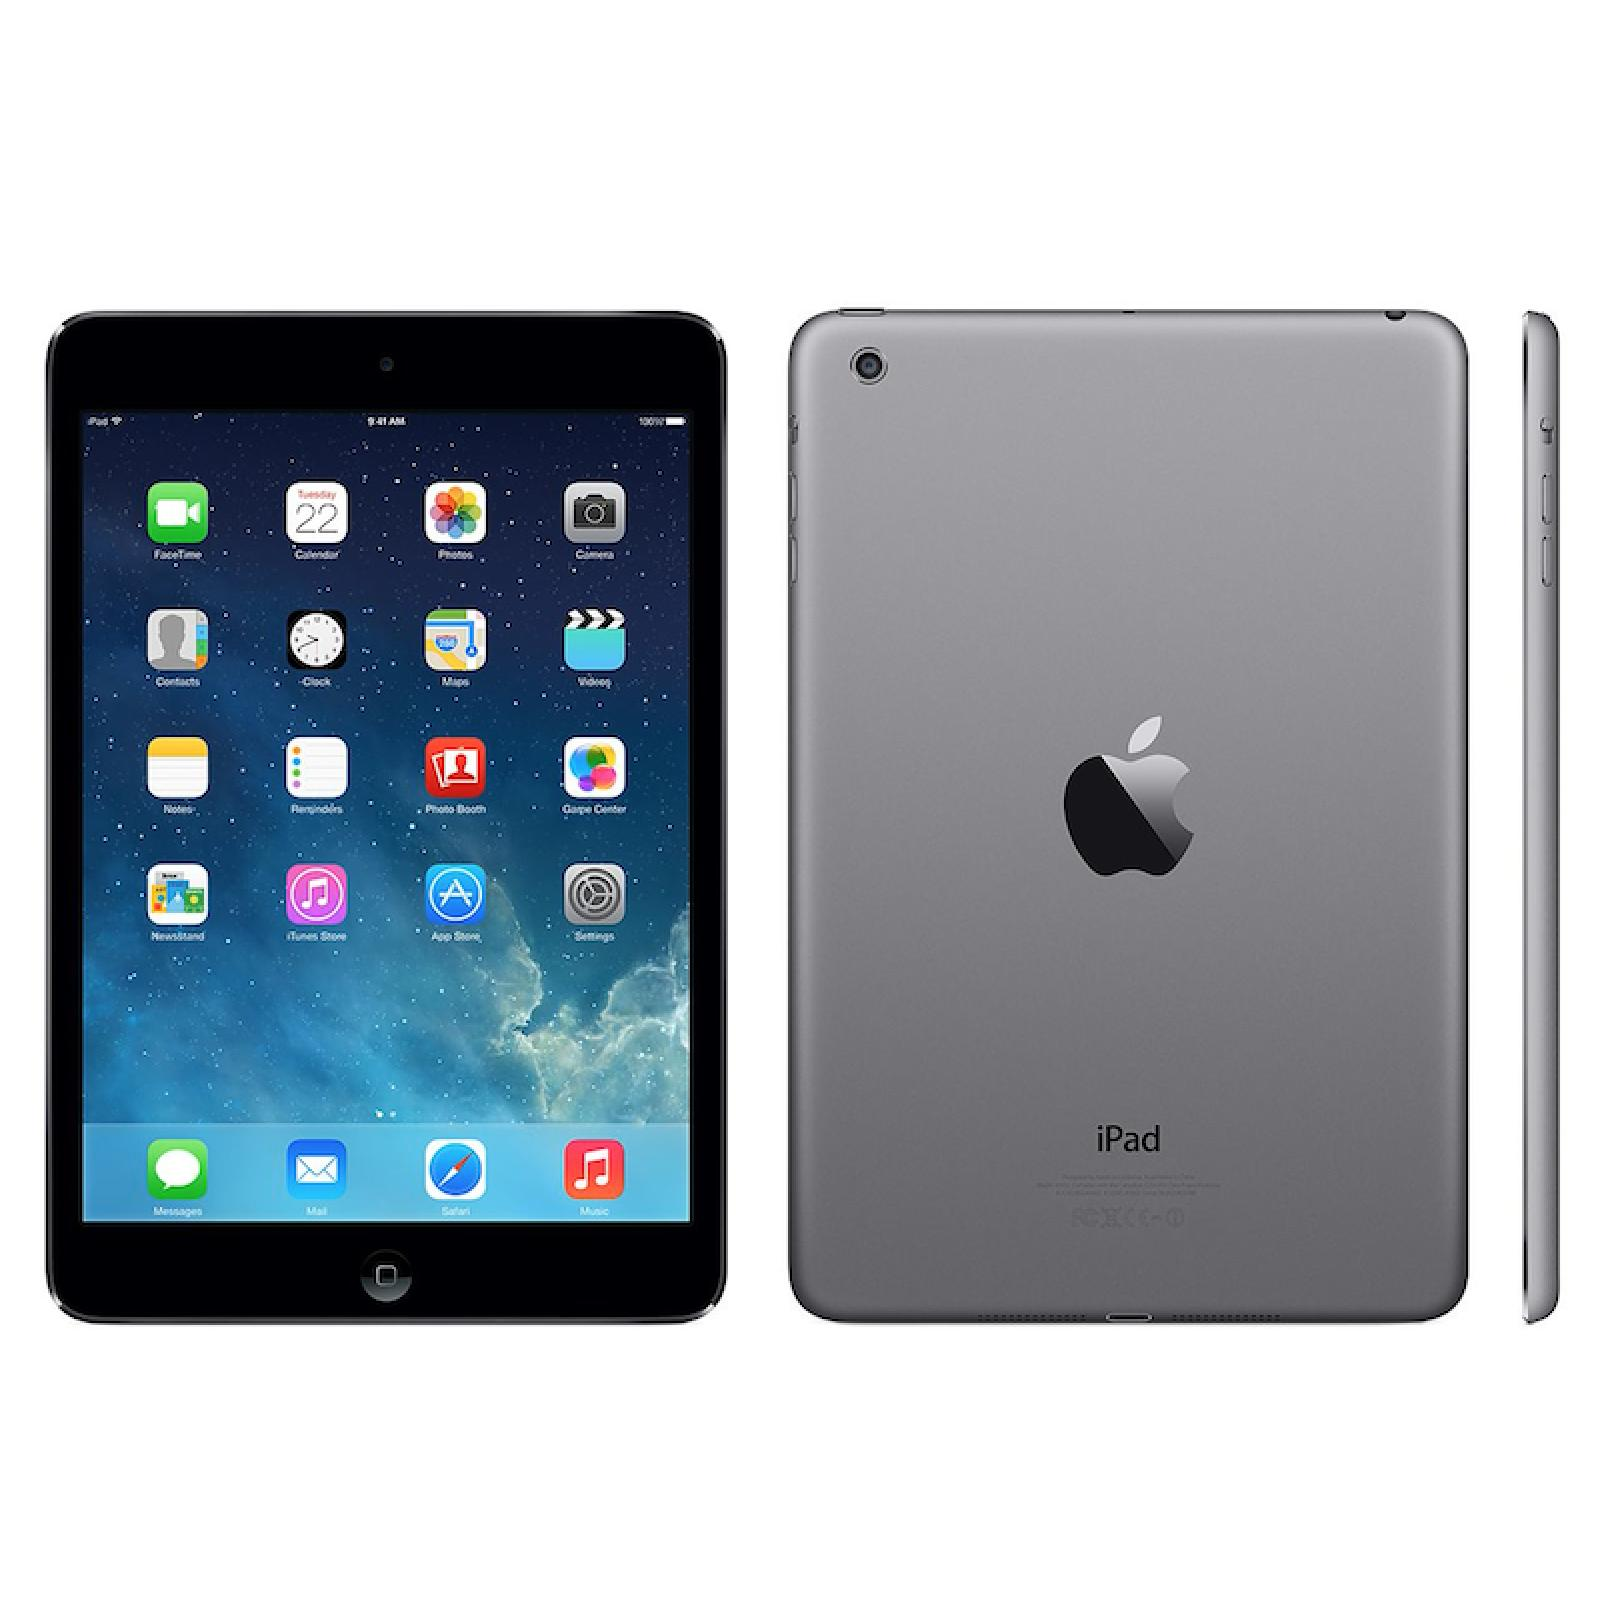 ipad mini 2 32gb spacegrau wlan gebraucht back market. Black Bedroom Furniture Sets. Home Design Ideas